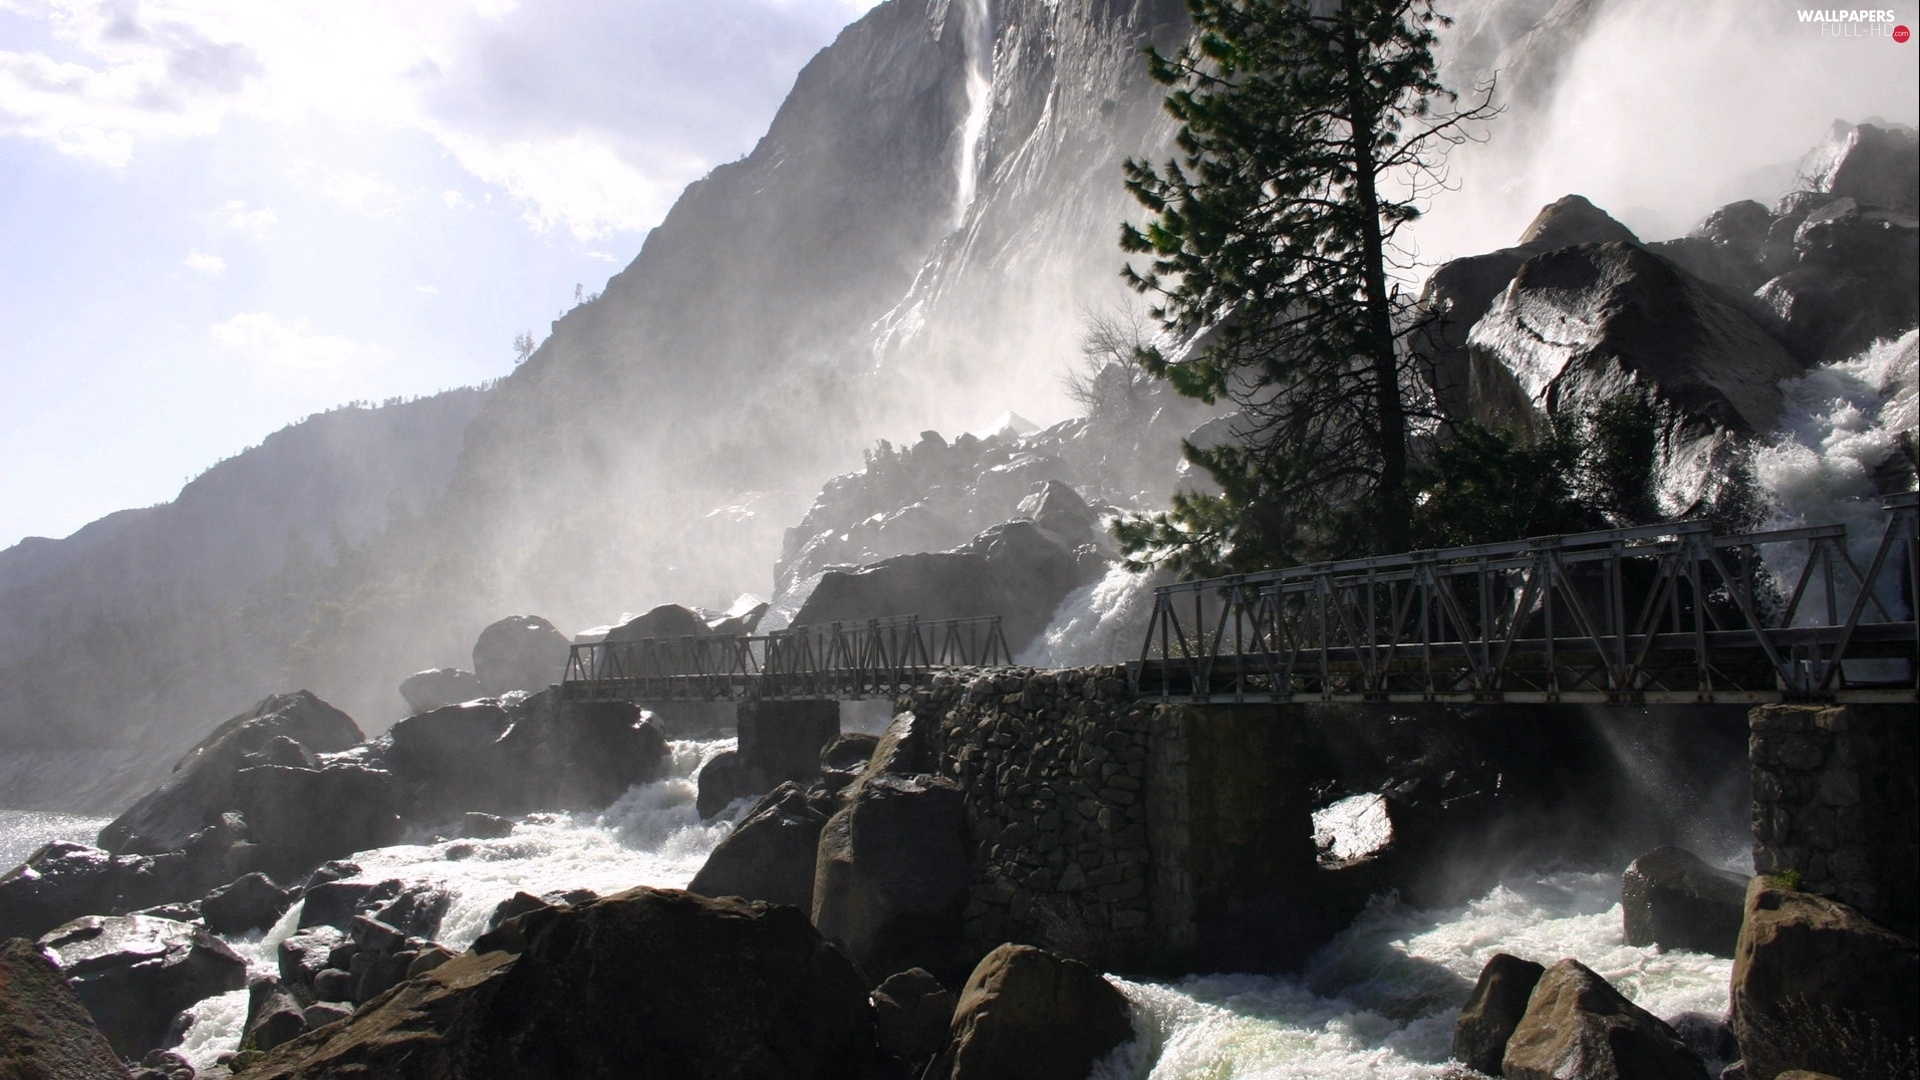 stream, rapid, Mountains, bridge, rocks